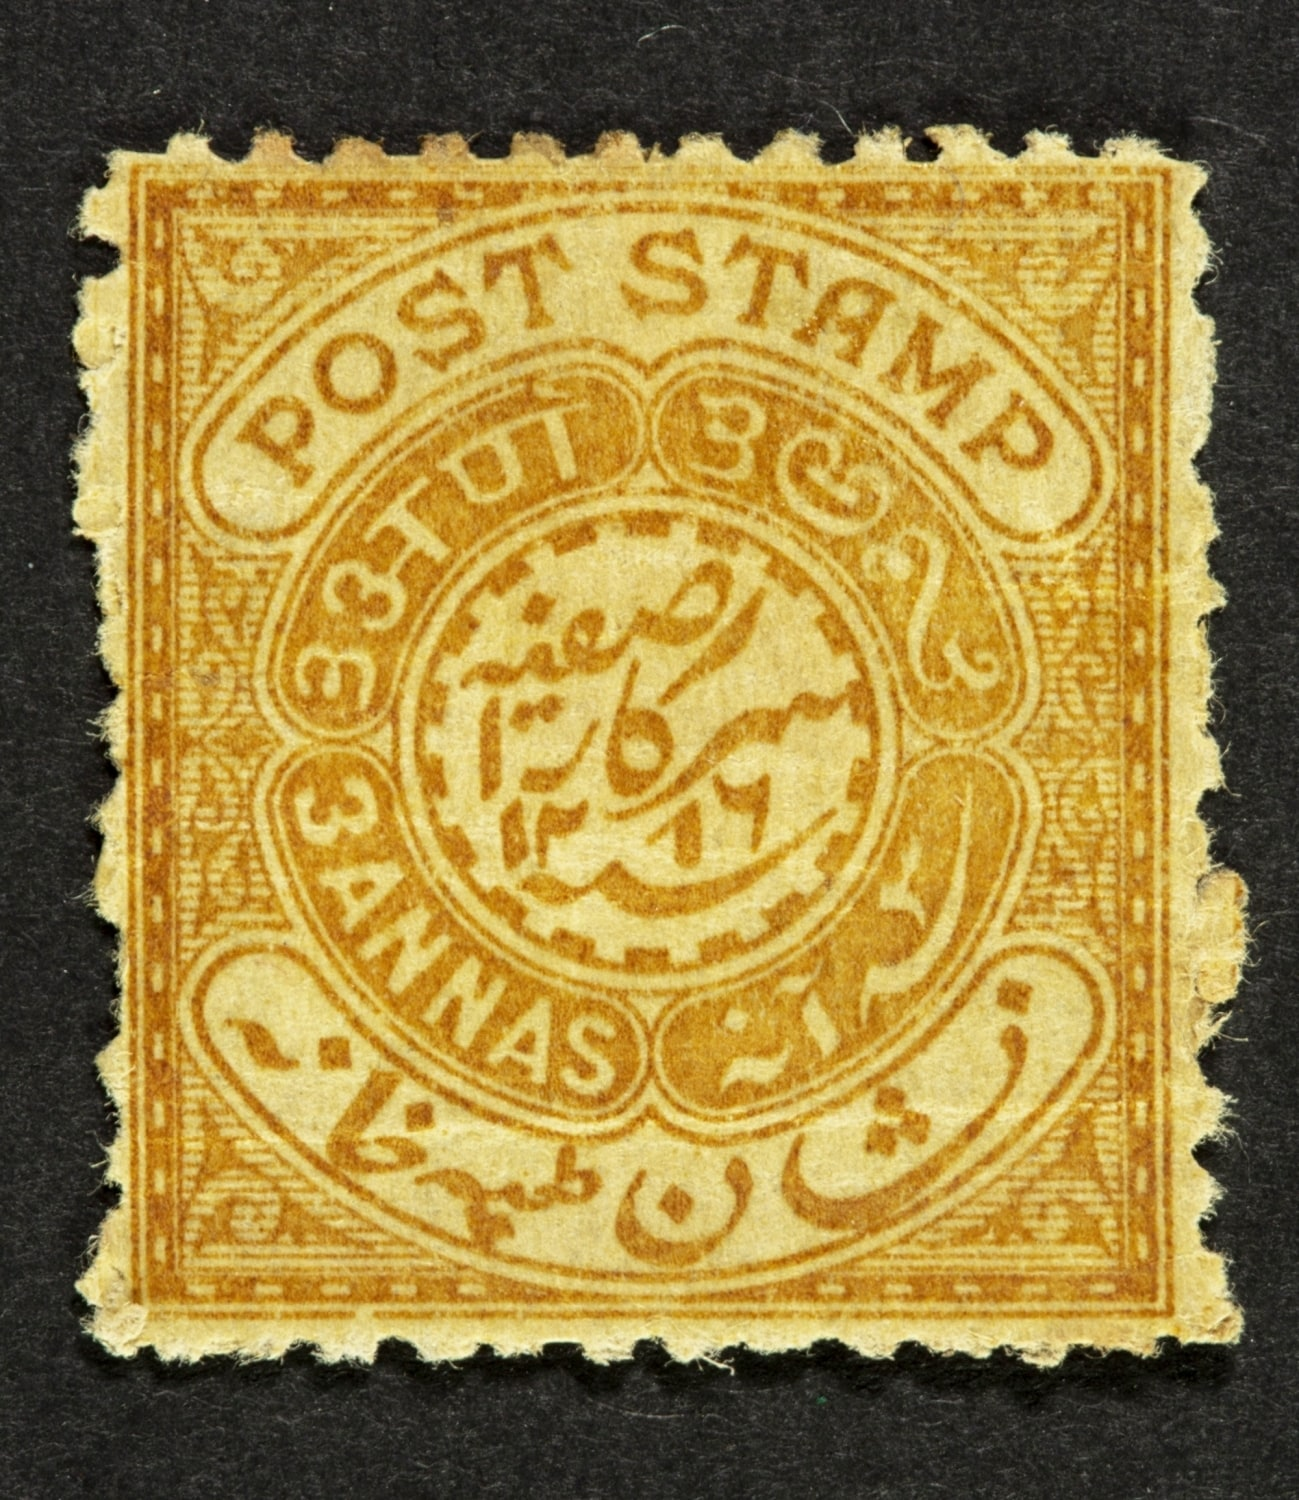 Post Stamp and Postage: The stamps used for everyday purposes evolved over a period of time. These stamps though commonly used in Hyderabad were unique because they featured the value of the stamp in four different languages Marathi, Telugu, English and Persian and later in Urdu. Year of Issue for Post Stamp: 1871 CE. (Photo Credit: The Ewari Collection)